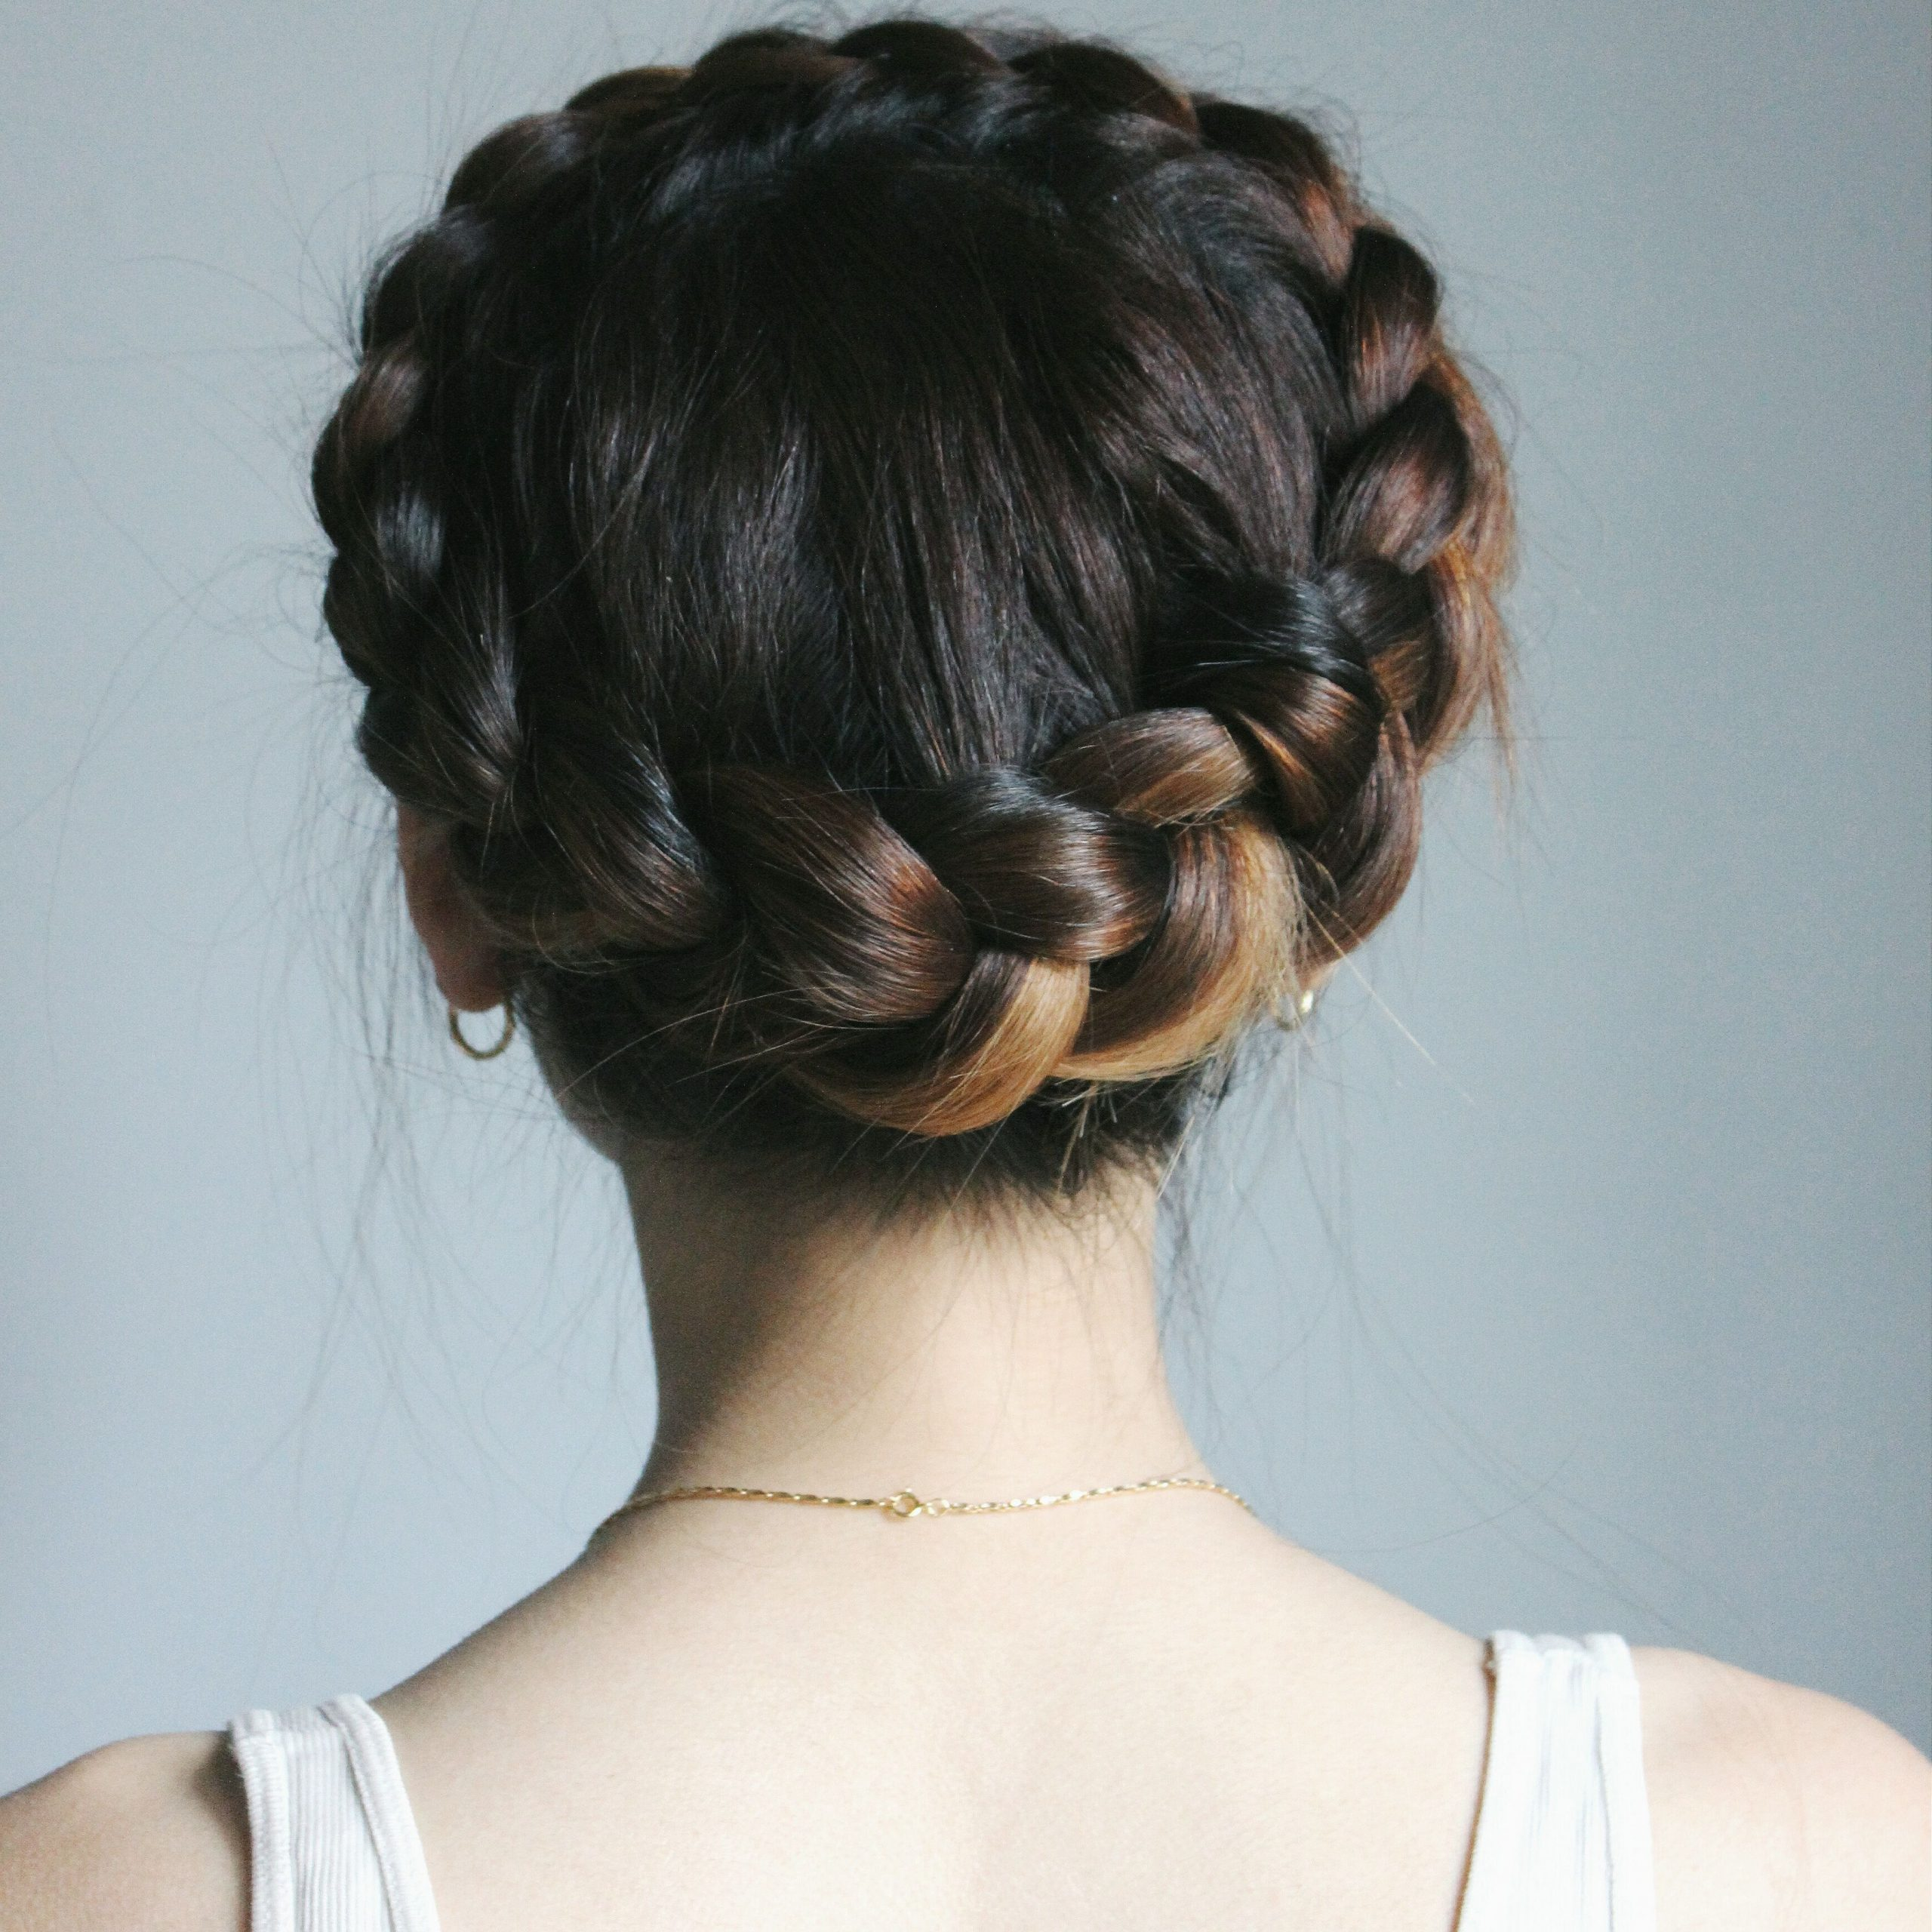 Braided Hairstyles, Crown Hairstyles For Widely Used Halo Braid Hairstyles With Bangs (View 3 of 20)